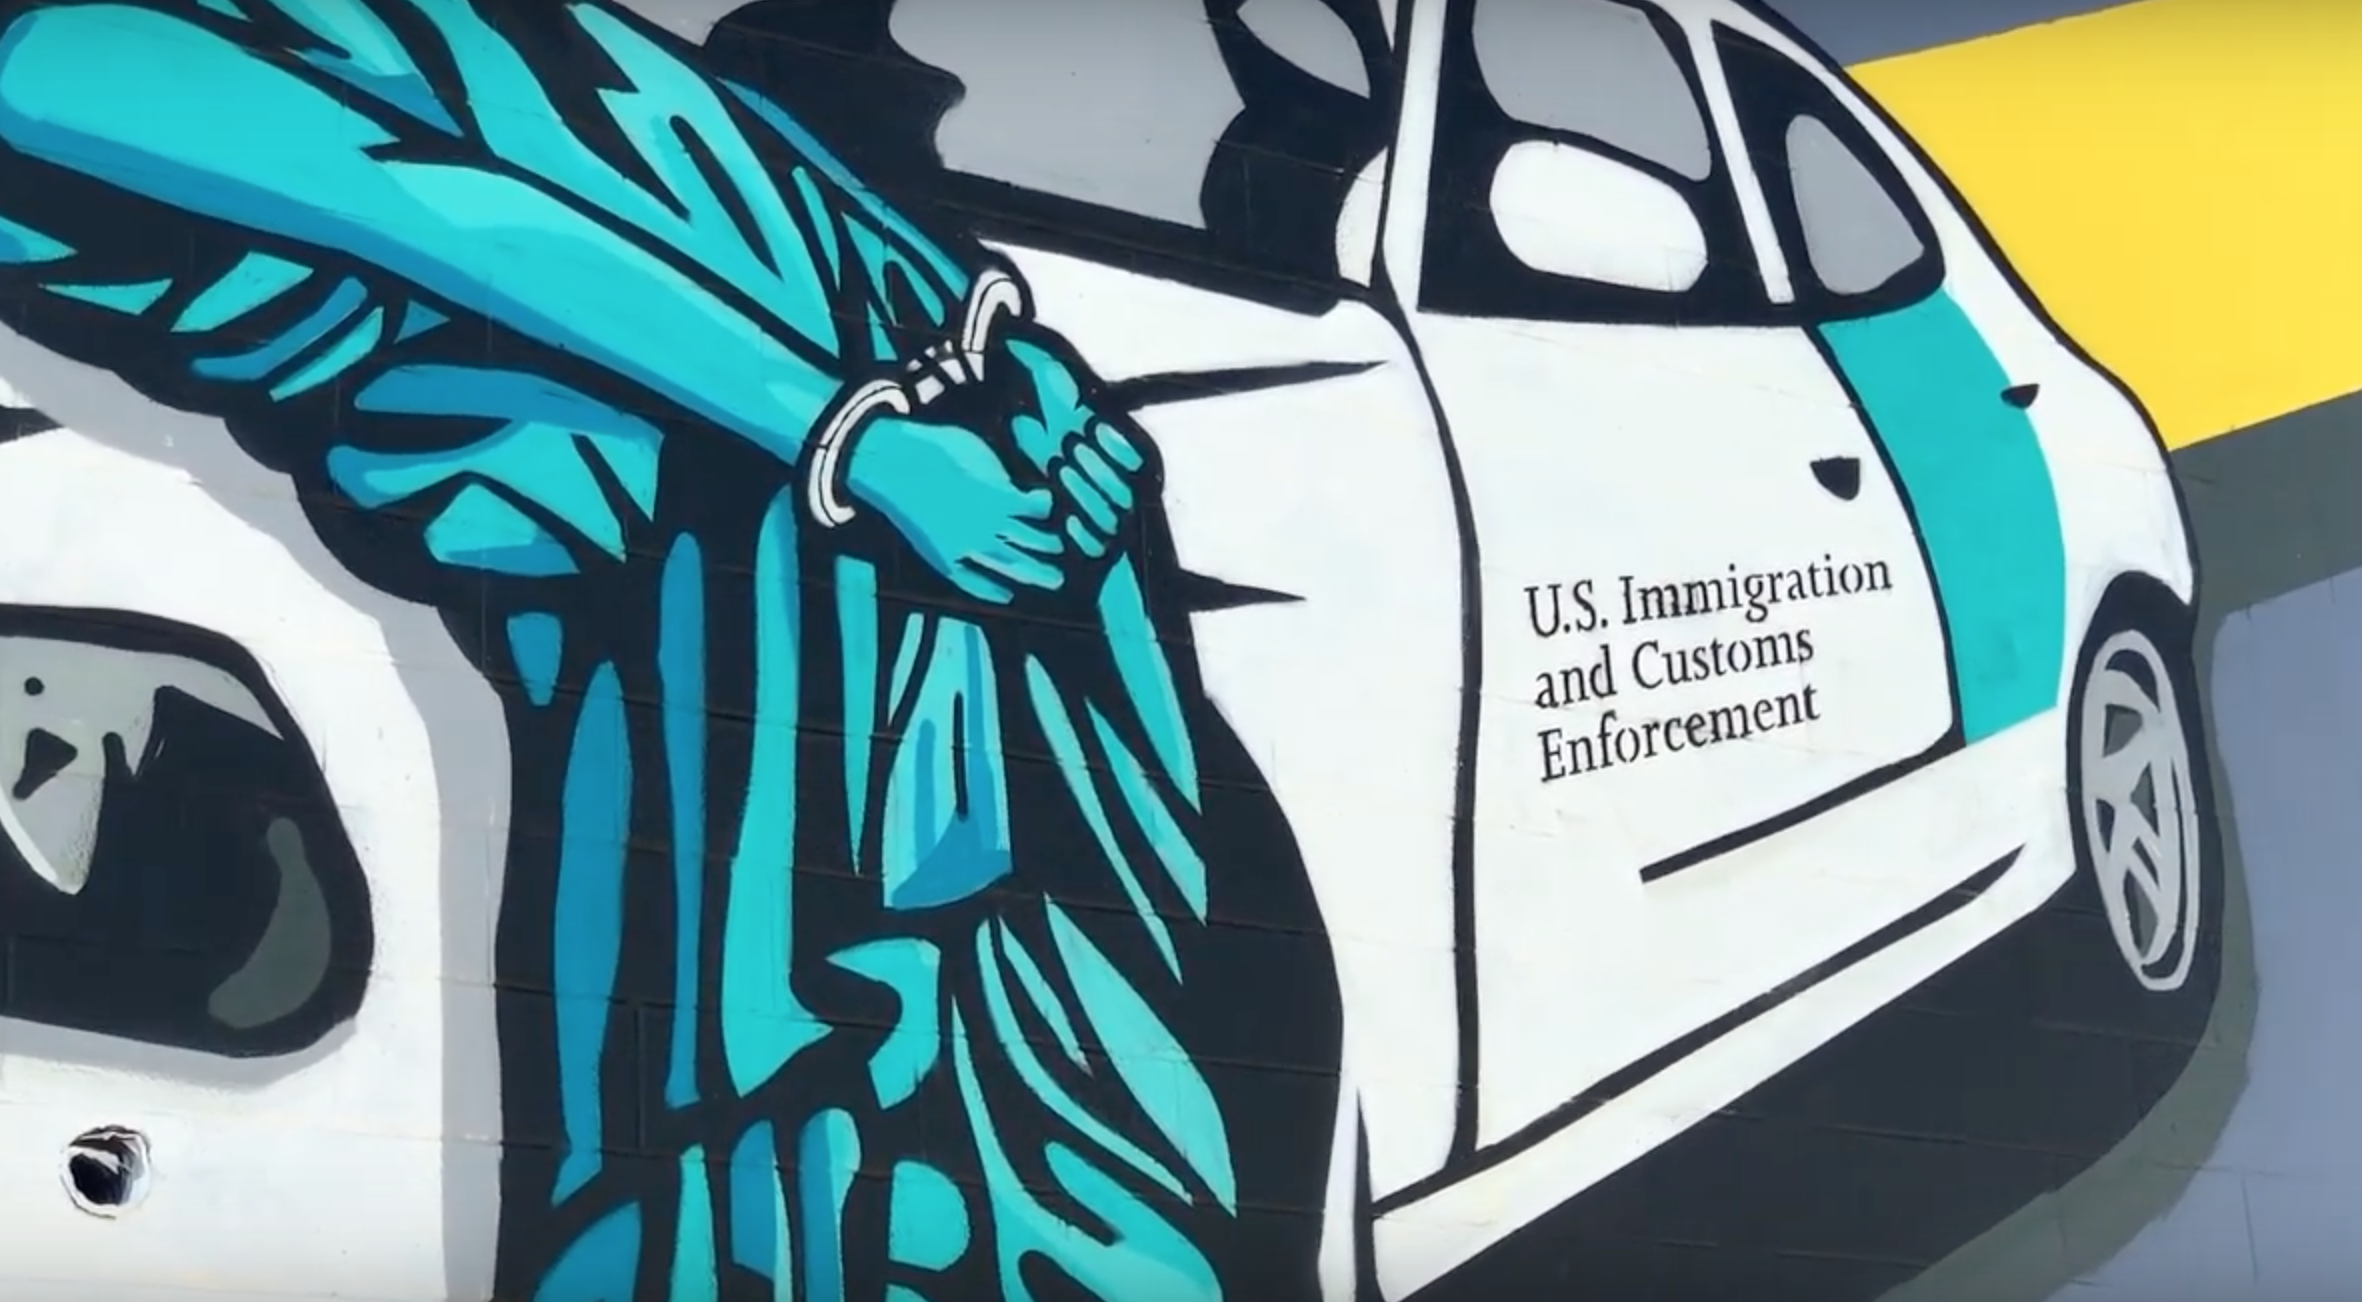 Statue of Liberty seen handcuffed by ICE in Las Vegas mural by British artist